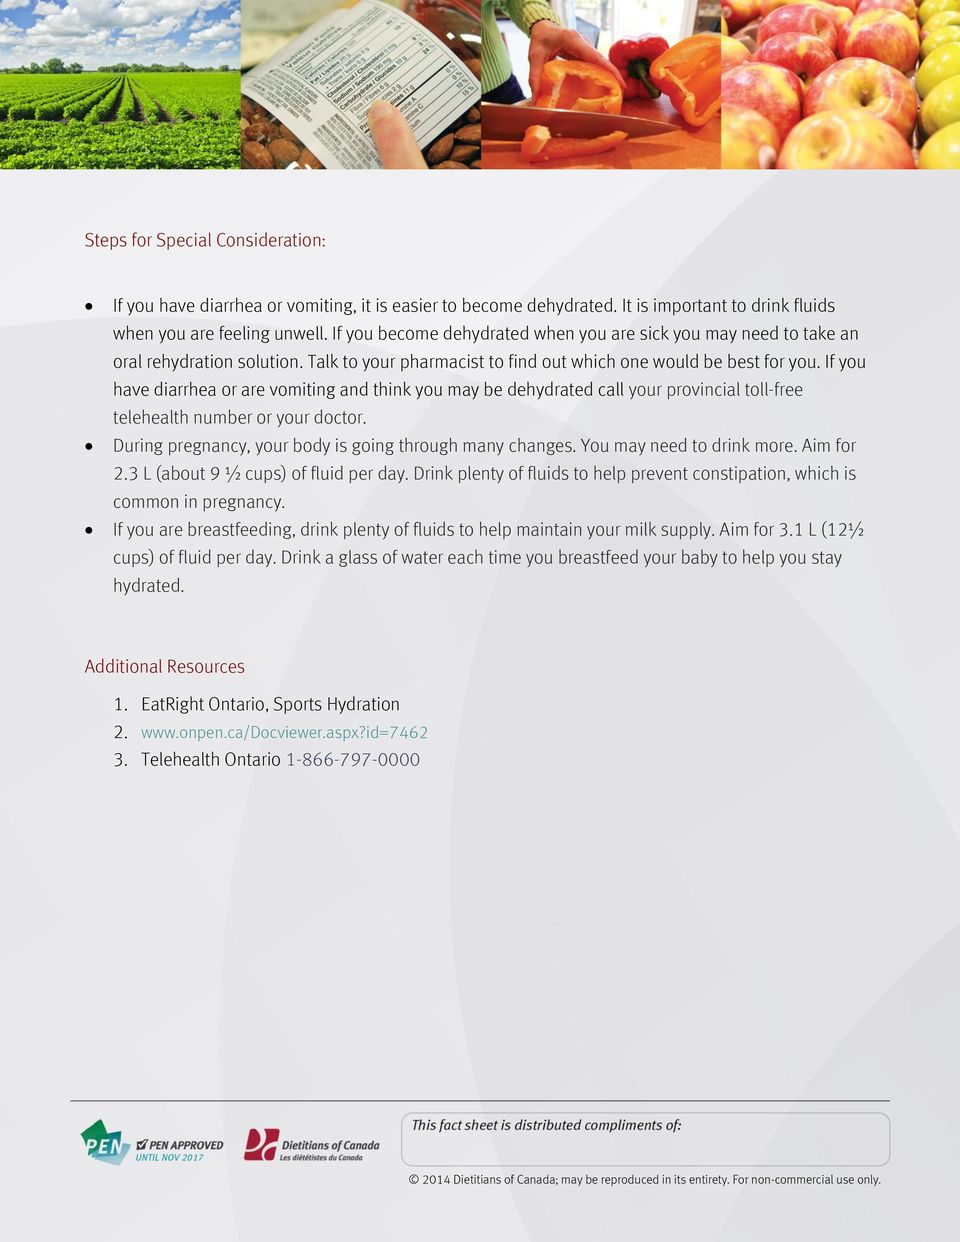 If you have diarrhea or are vomiting and think you may be dehydrated call your provincial toll-free telehealth number or your doctor. During pregnancy, your body is going through many changes.